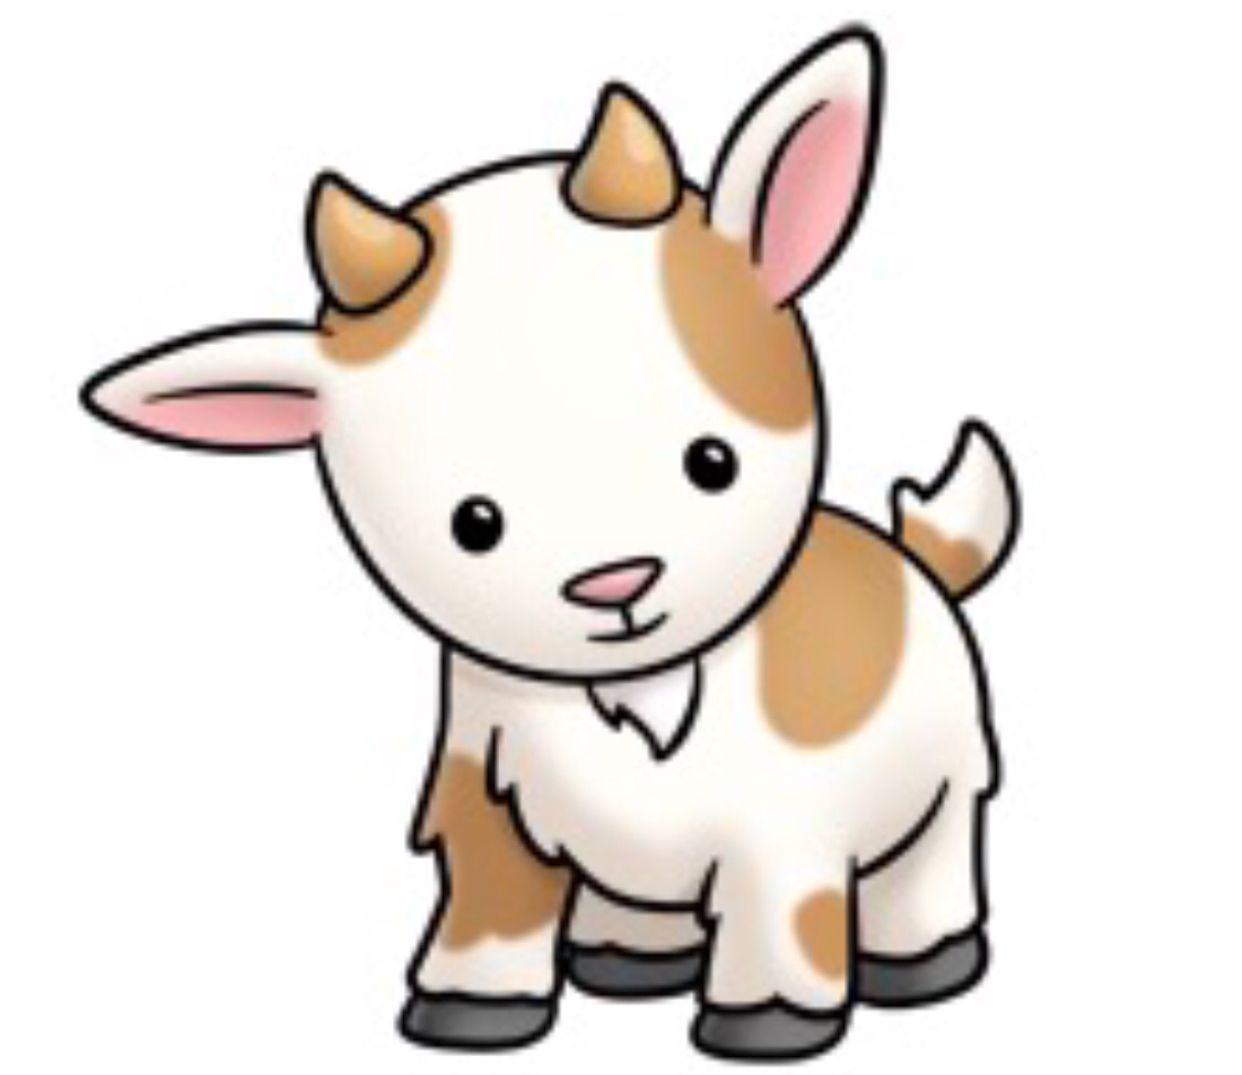 Cute Goat Clipart Pin By Angel On Goats Pinterest Goats